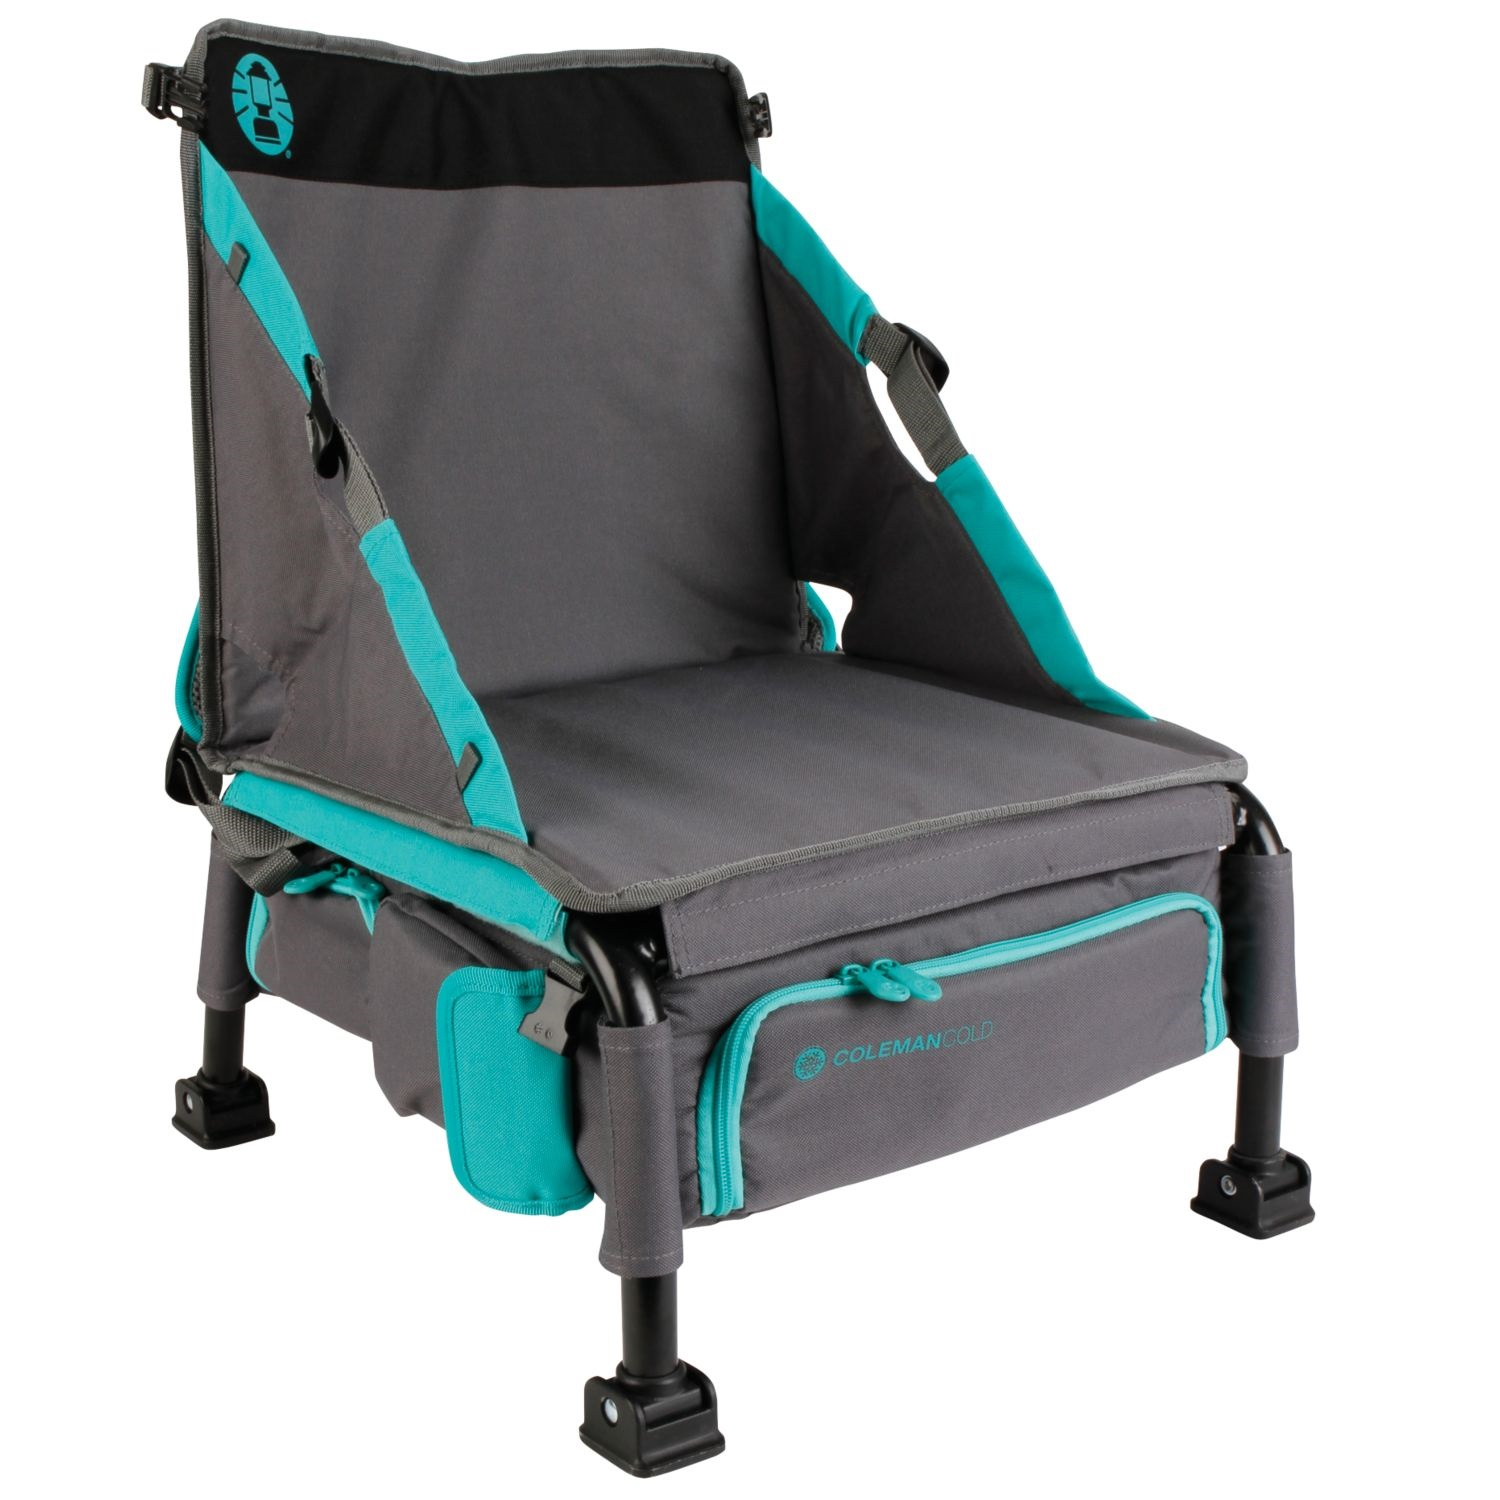 Coleman Treklite Plus Coolerpack Chair Teal